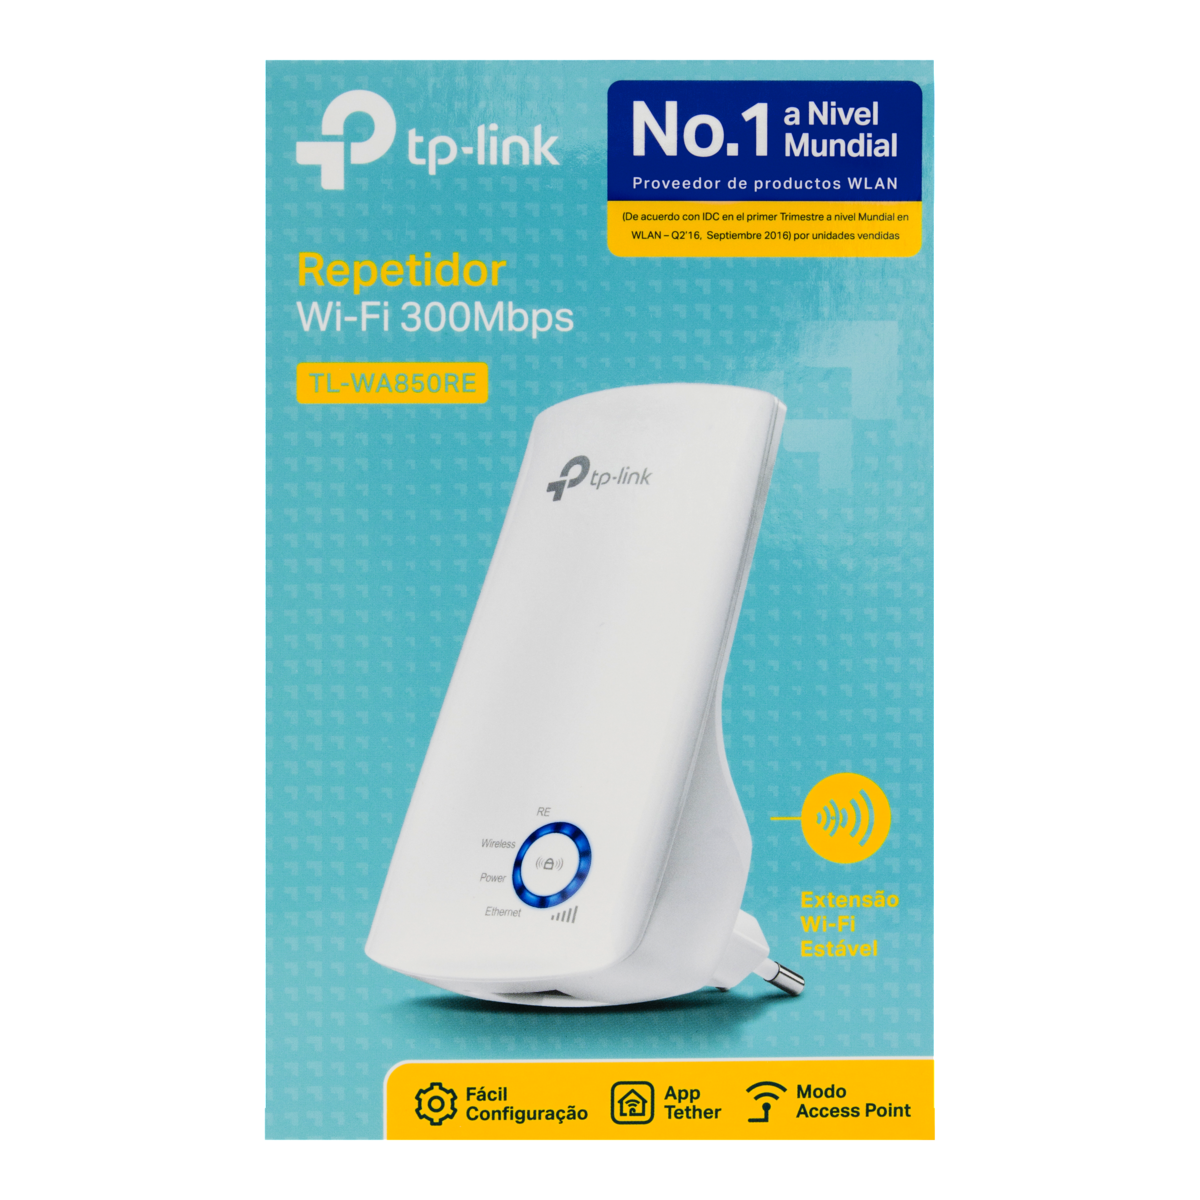 7898544550180 - REPETIDOR WI-FI 300MBPS TL-WA850RE TP-LINK